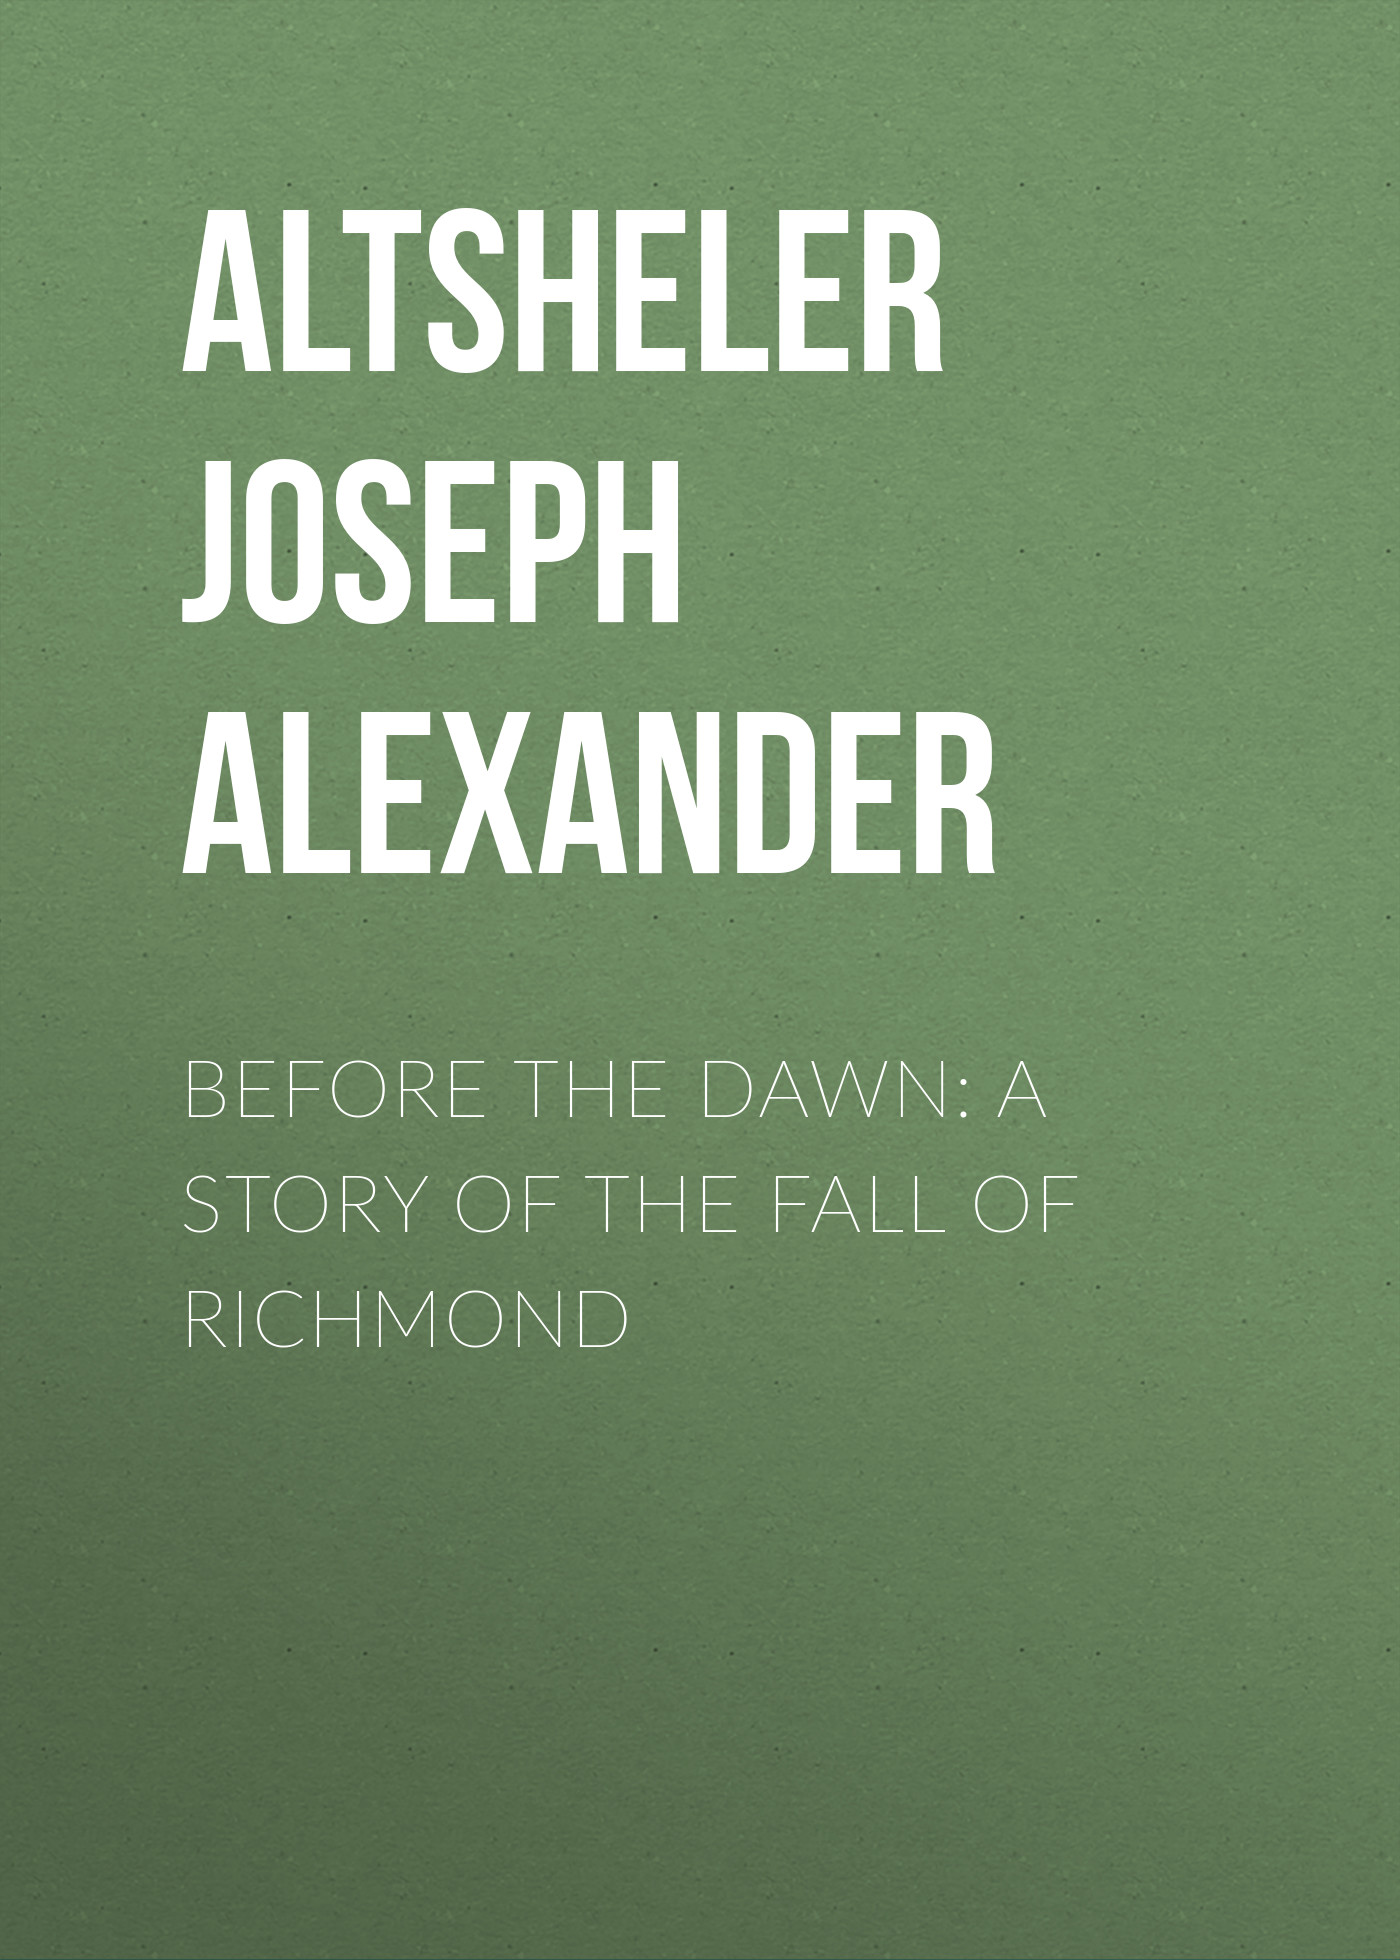 Before the Dawn: A Story of the Fall of Richmond